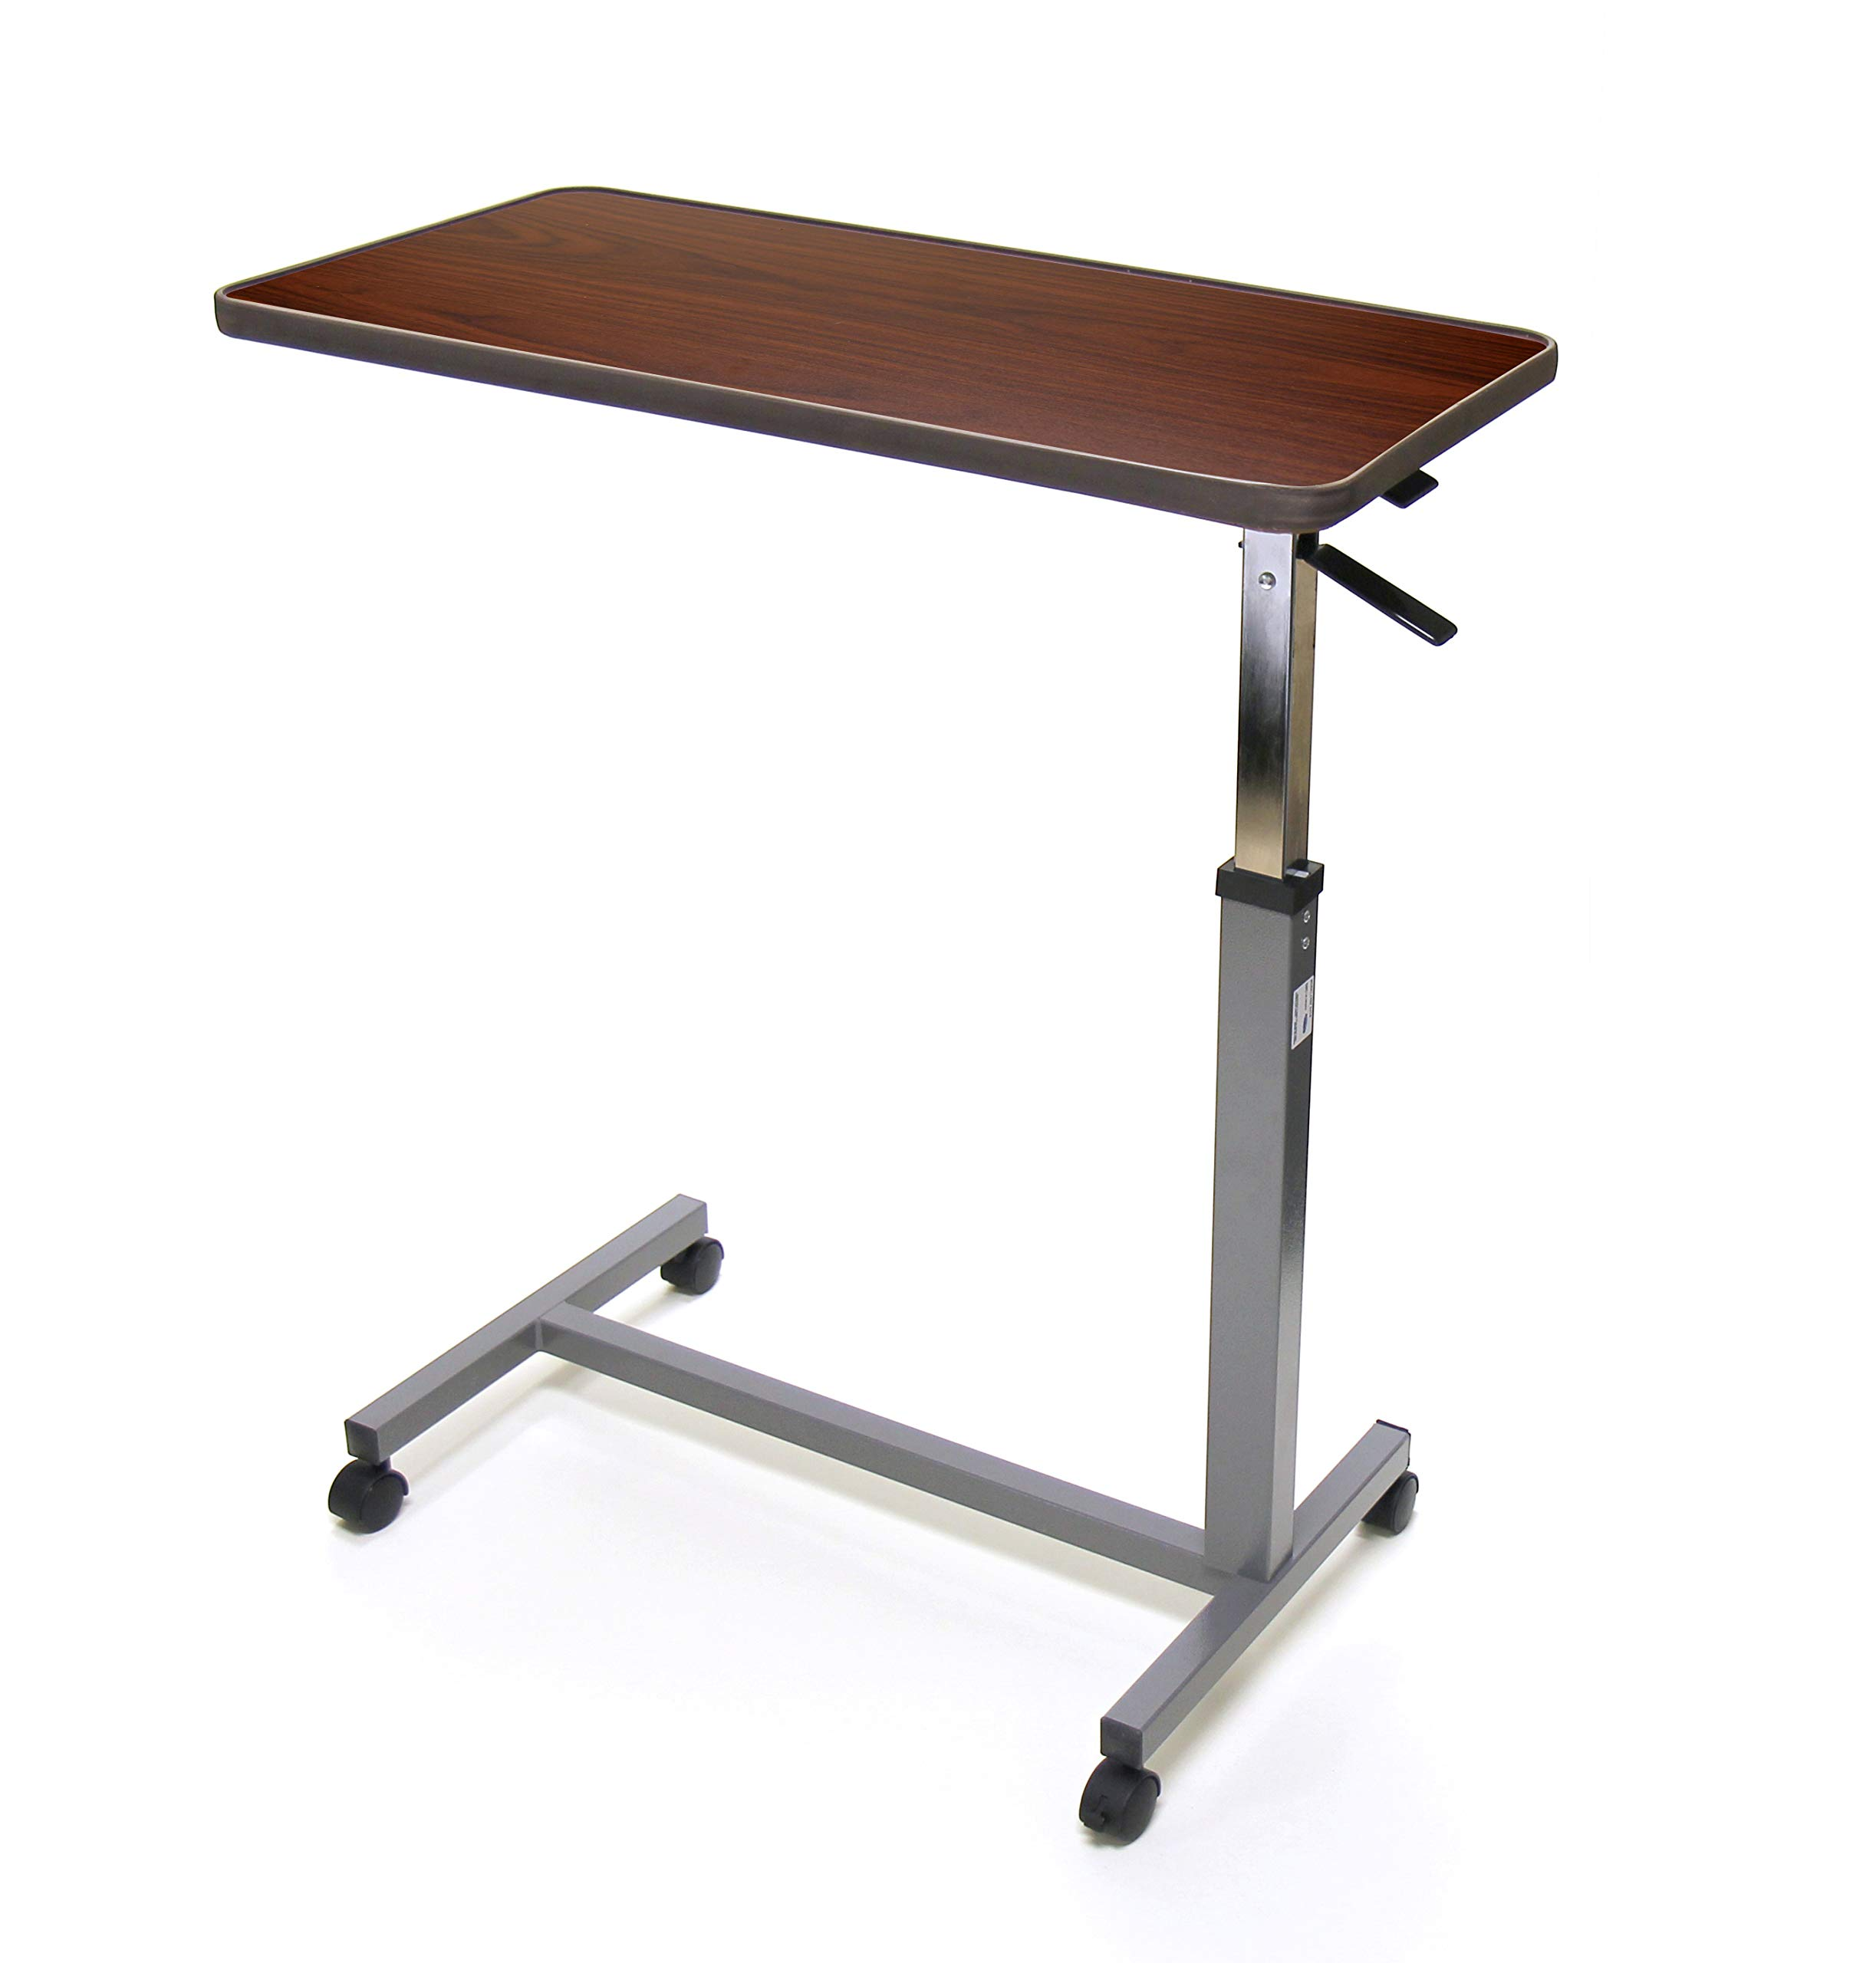 Invacare Hospital Style Overbed Table with Adjustable Height Tilt Top and Wheels, Fits Over Beds and Bedside, 6418